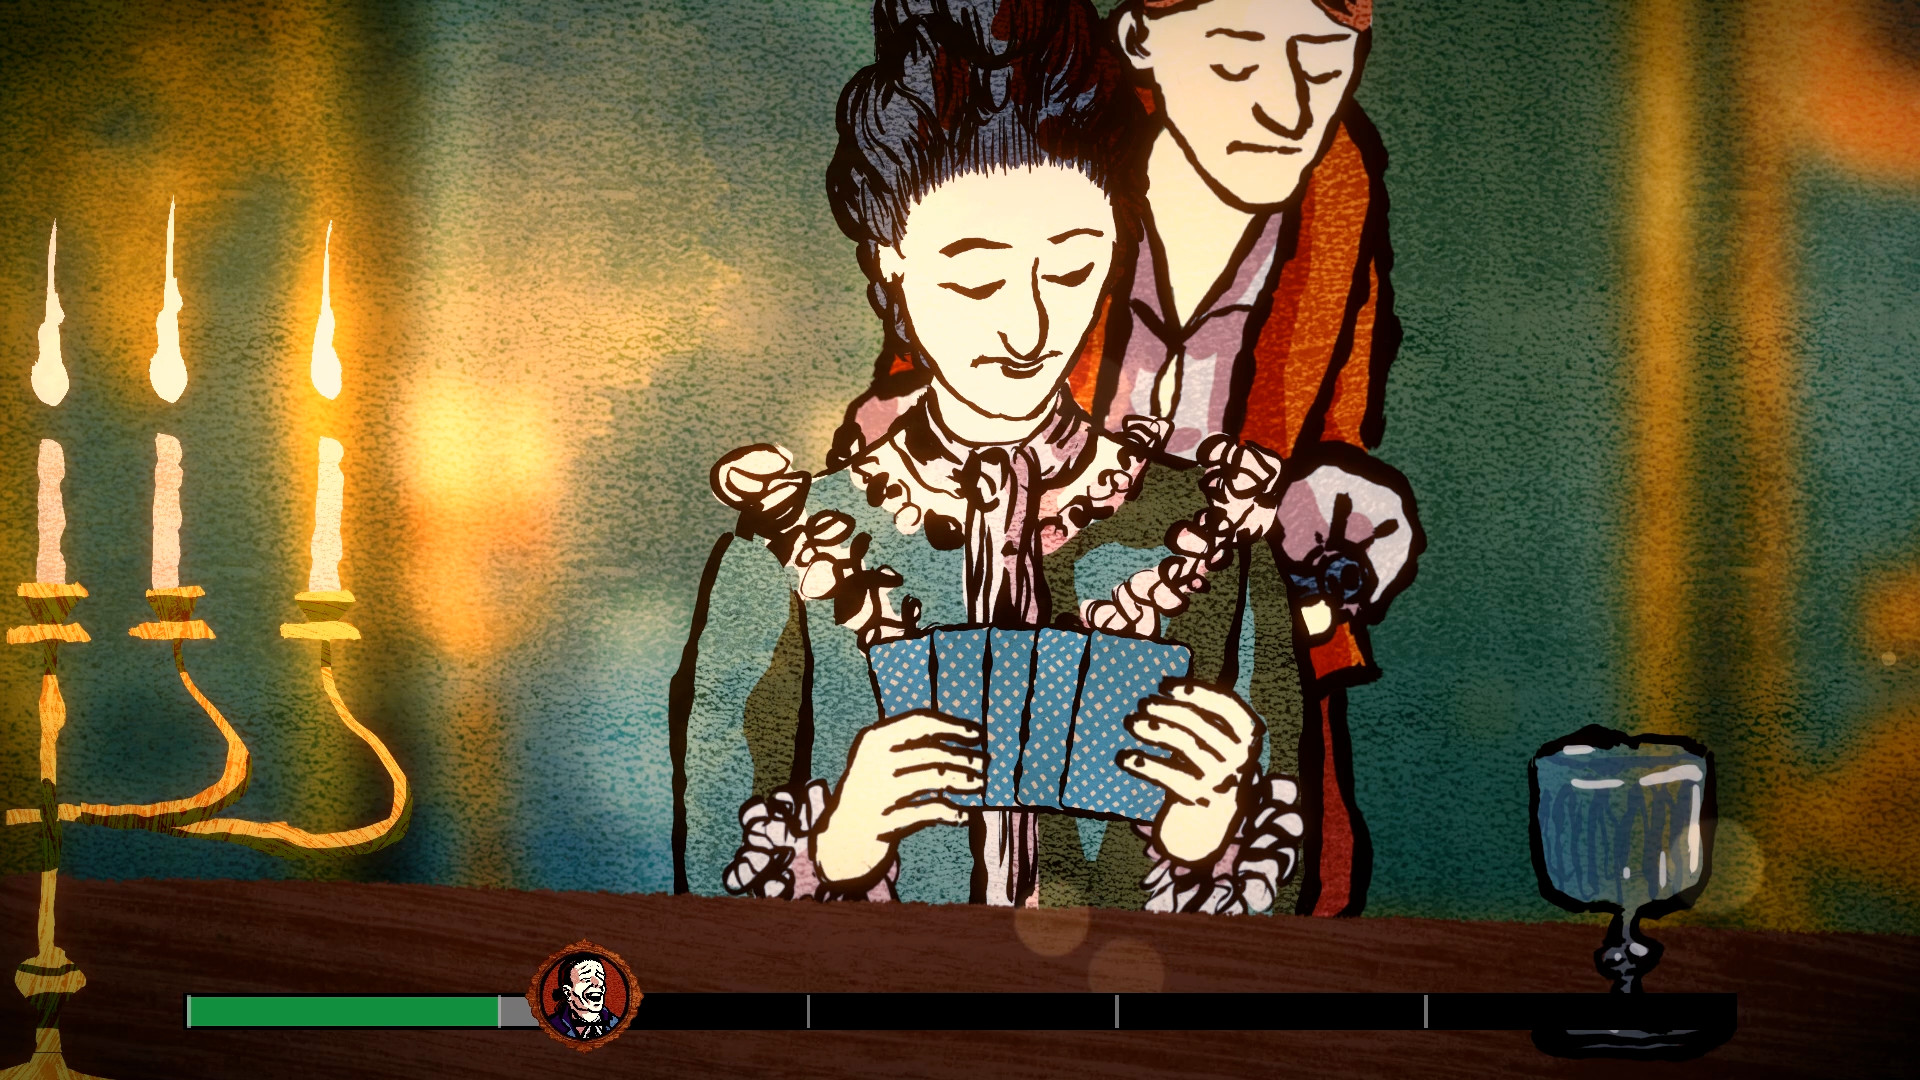 Card Shark is a love letter to history's best tricksters, scammers, and cheats